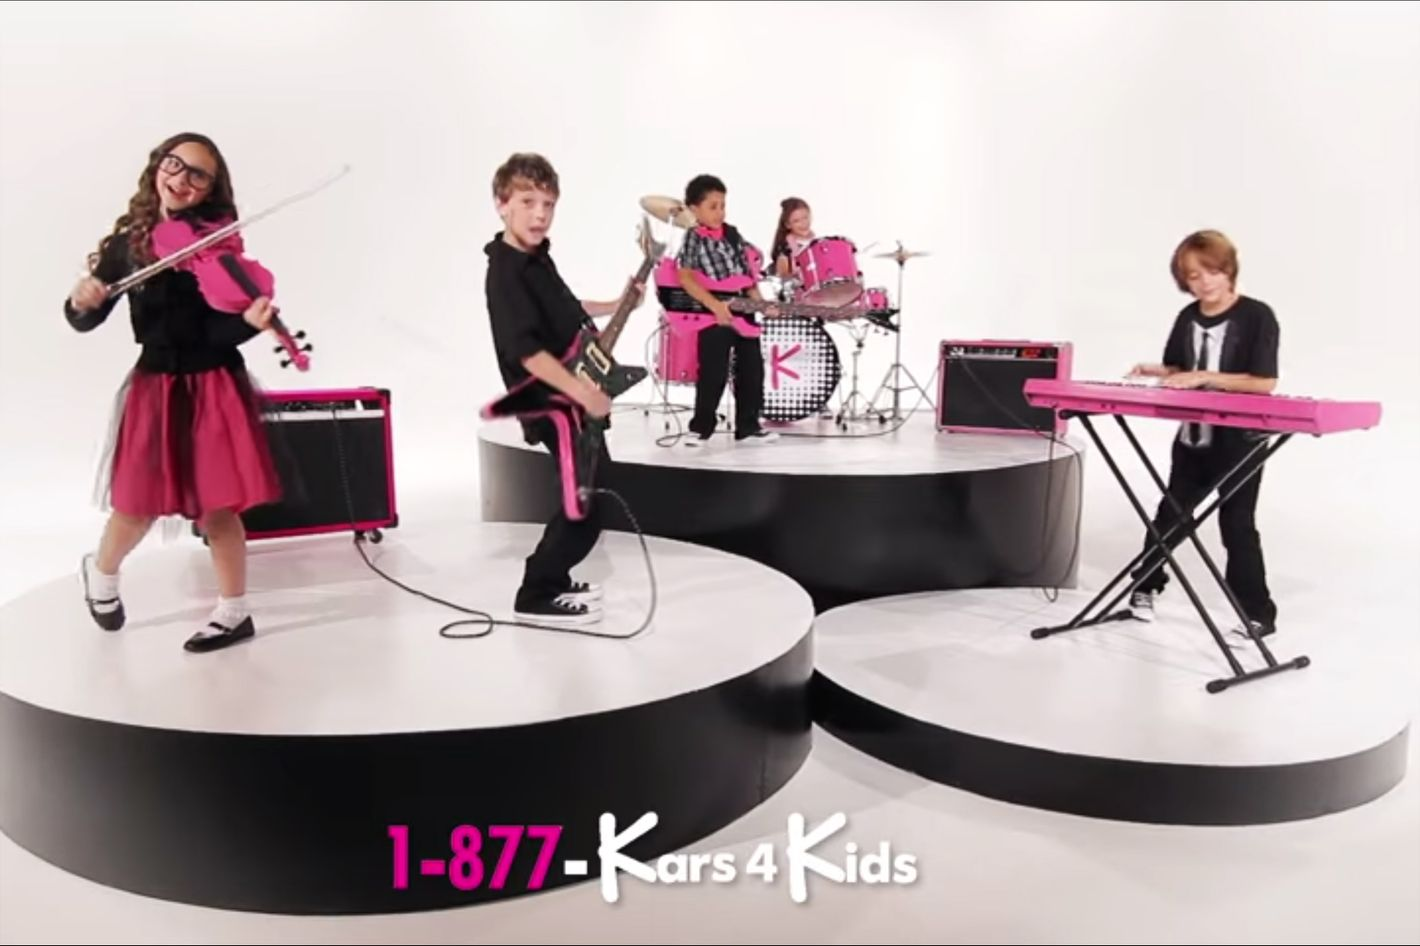 kars4kids is on television the end is nigh